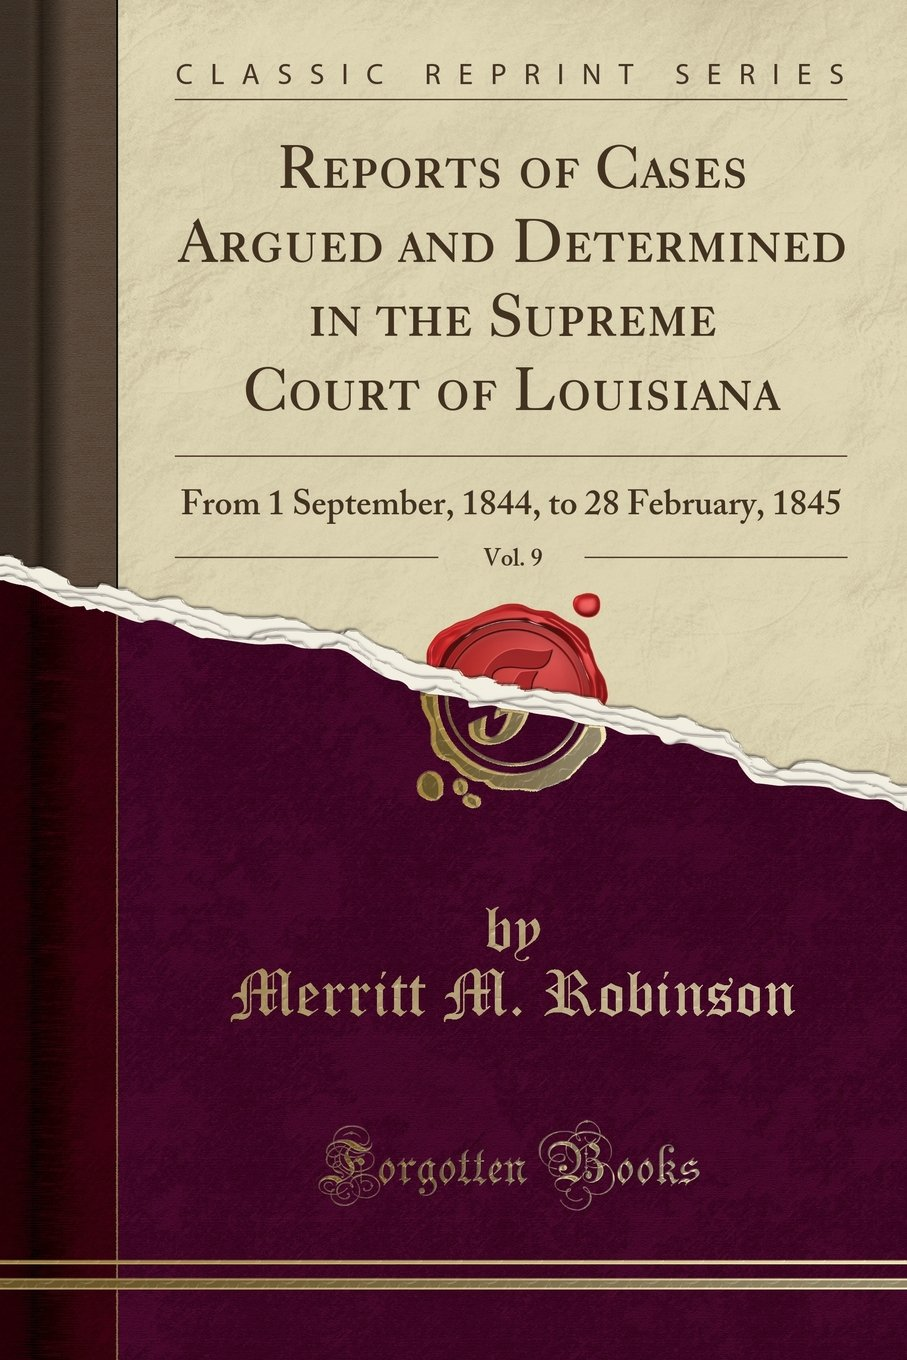 Reports of Cases Argued and Determined in the Supreme Court of Louisiana, Vol. 9: From 1 September, 1844, to 28 February, 1845 (Classic Reprint) pdf epub